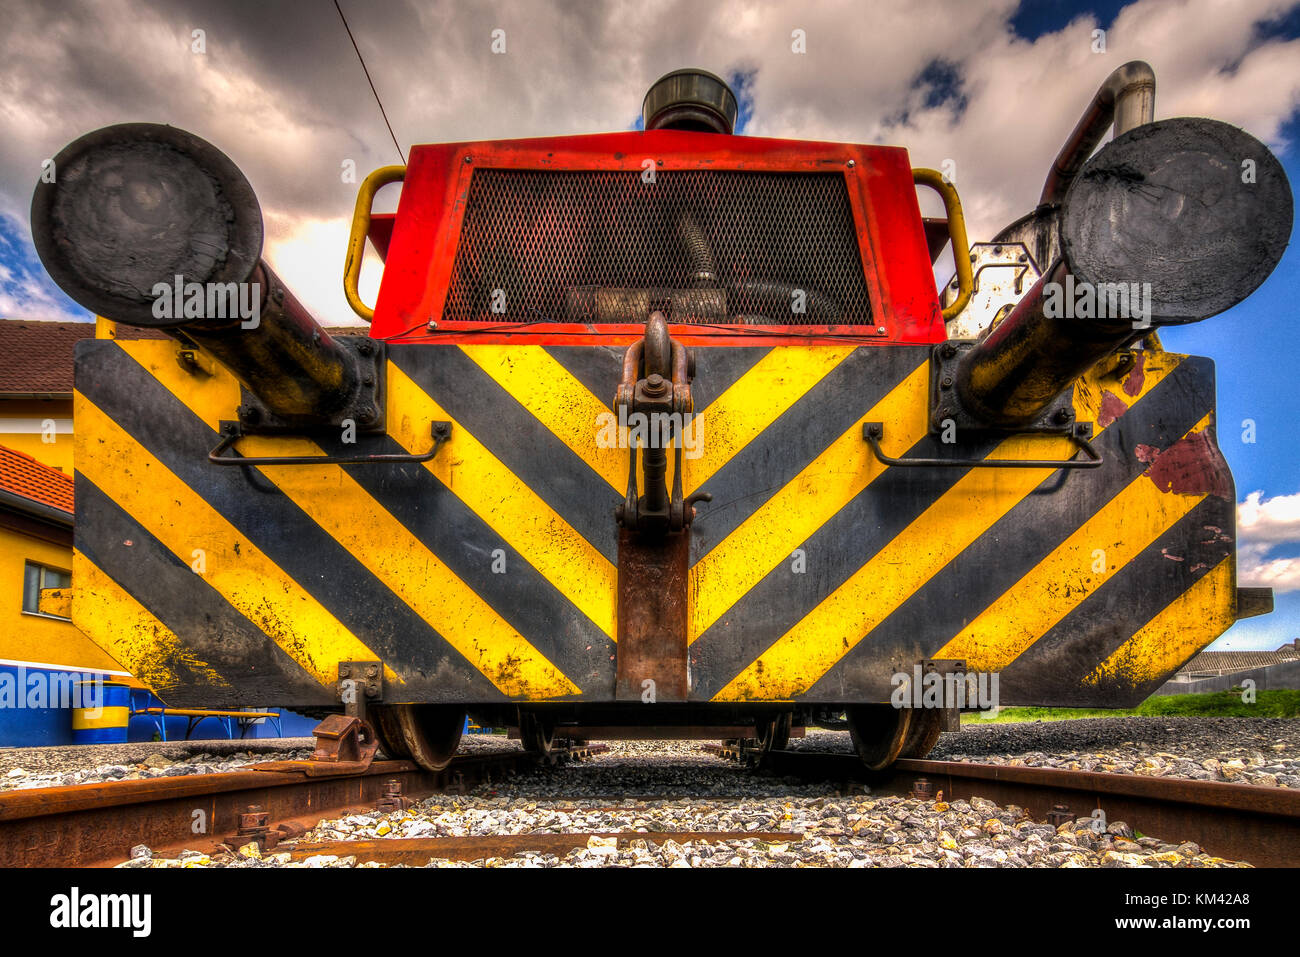 Loco front view in HDR - Stock Image